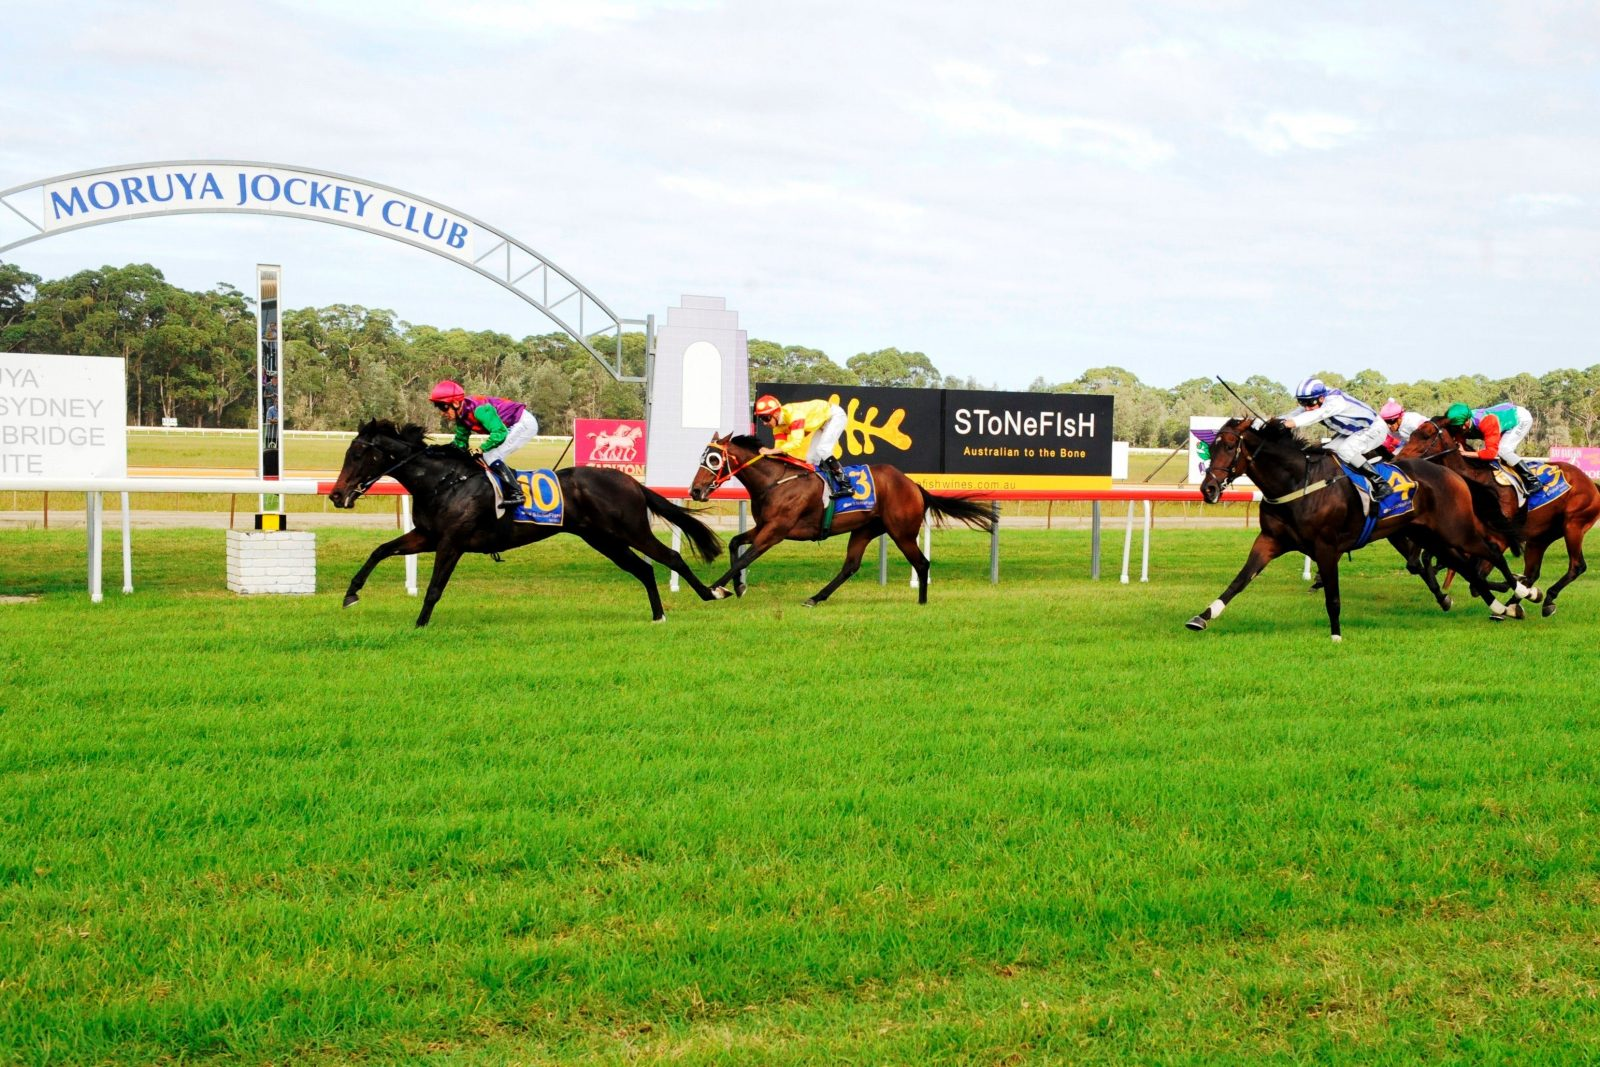 horses coming up to the finishing post at Moruya Race course